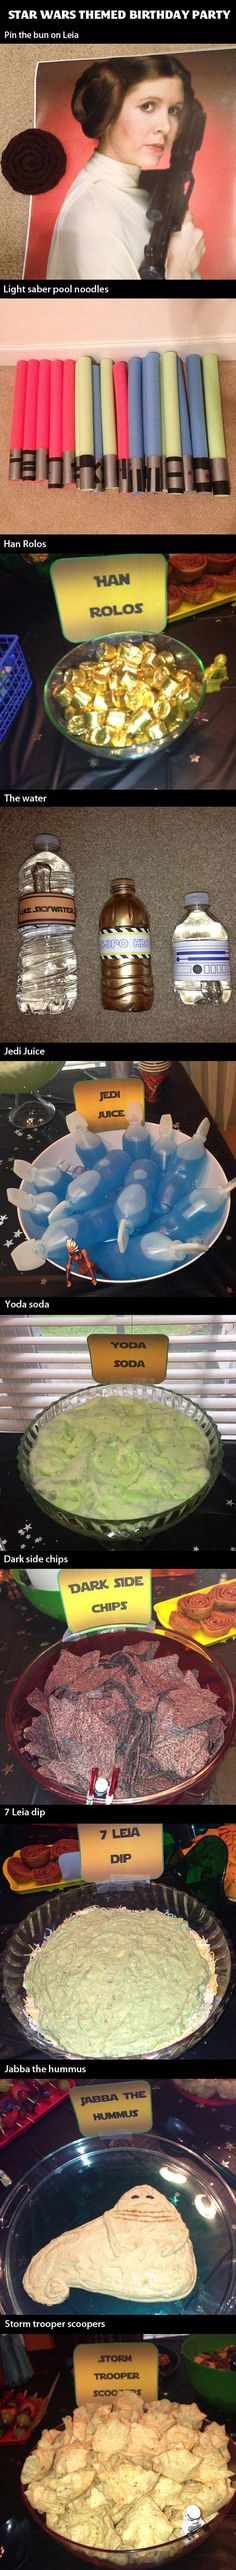 Star Wars themed birthday party...